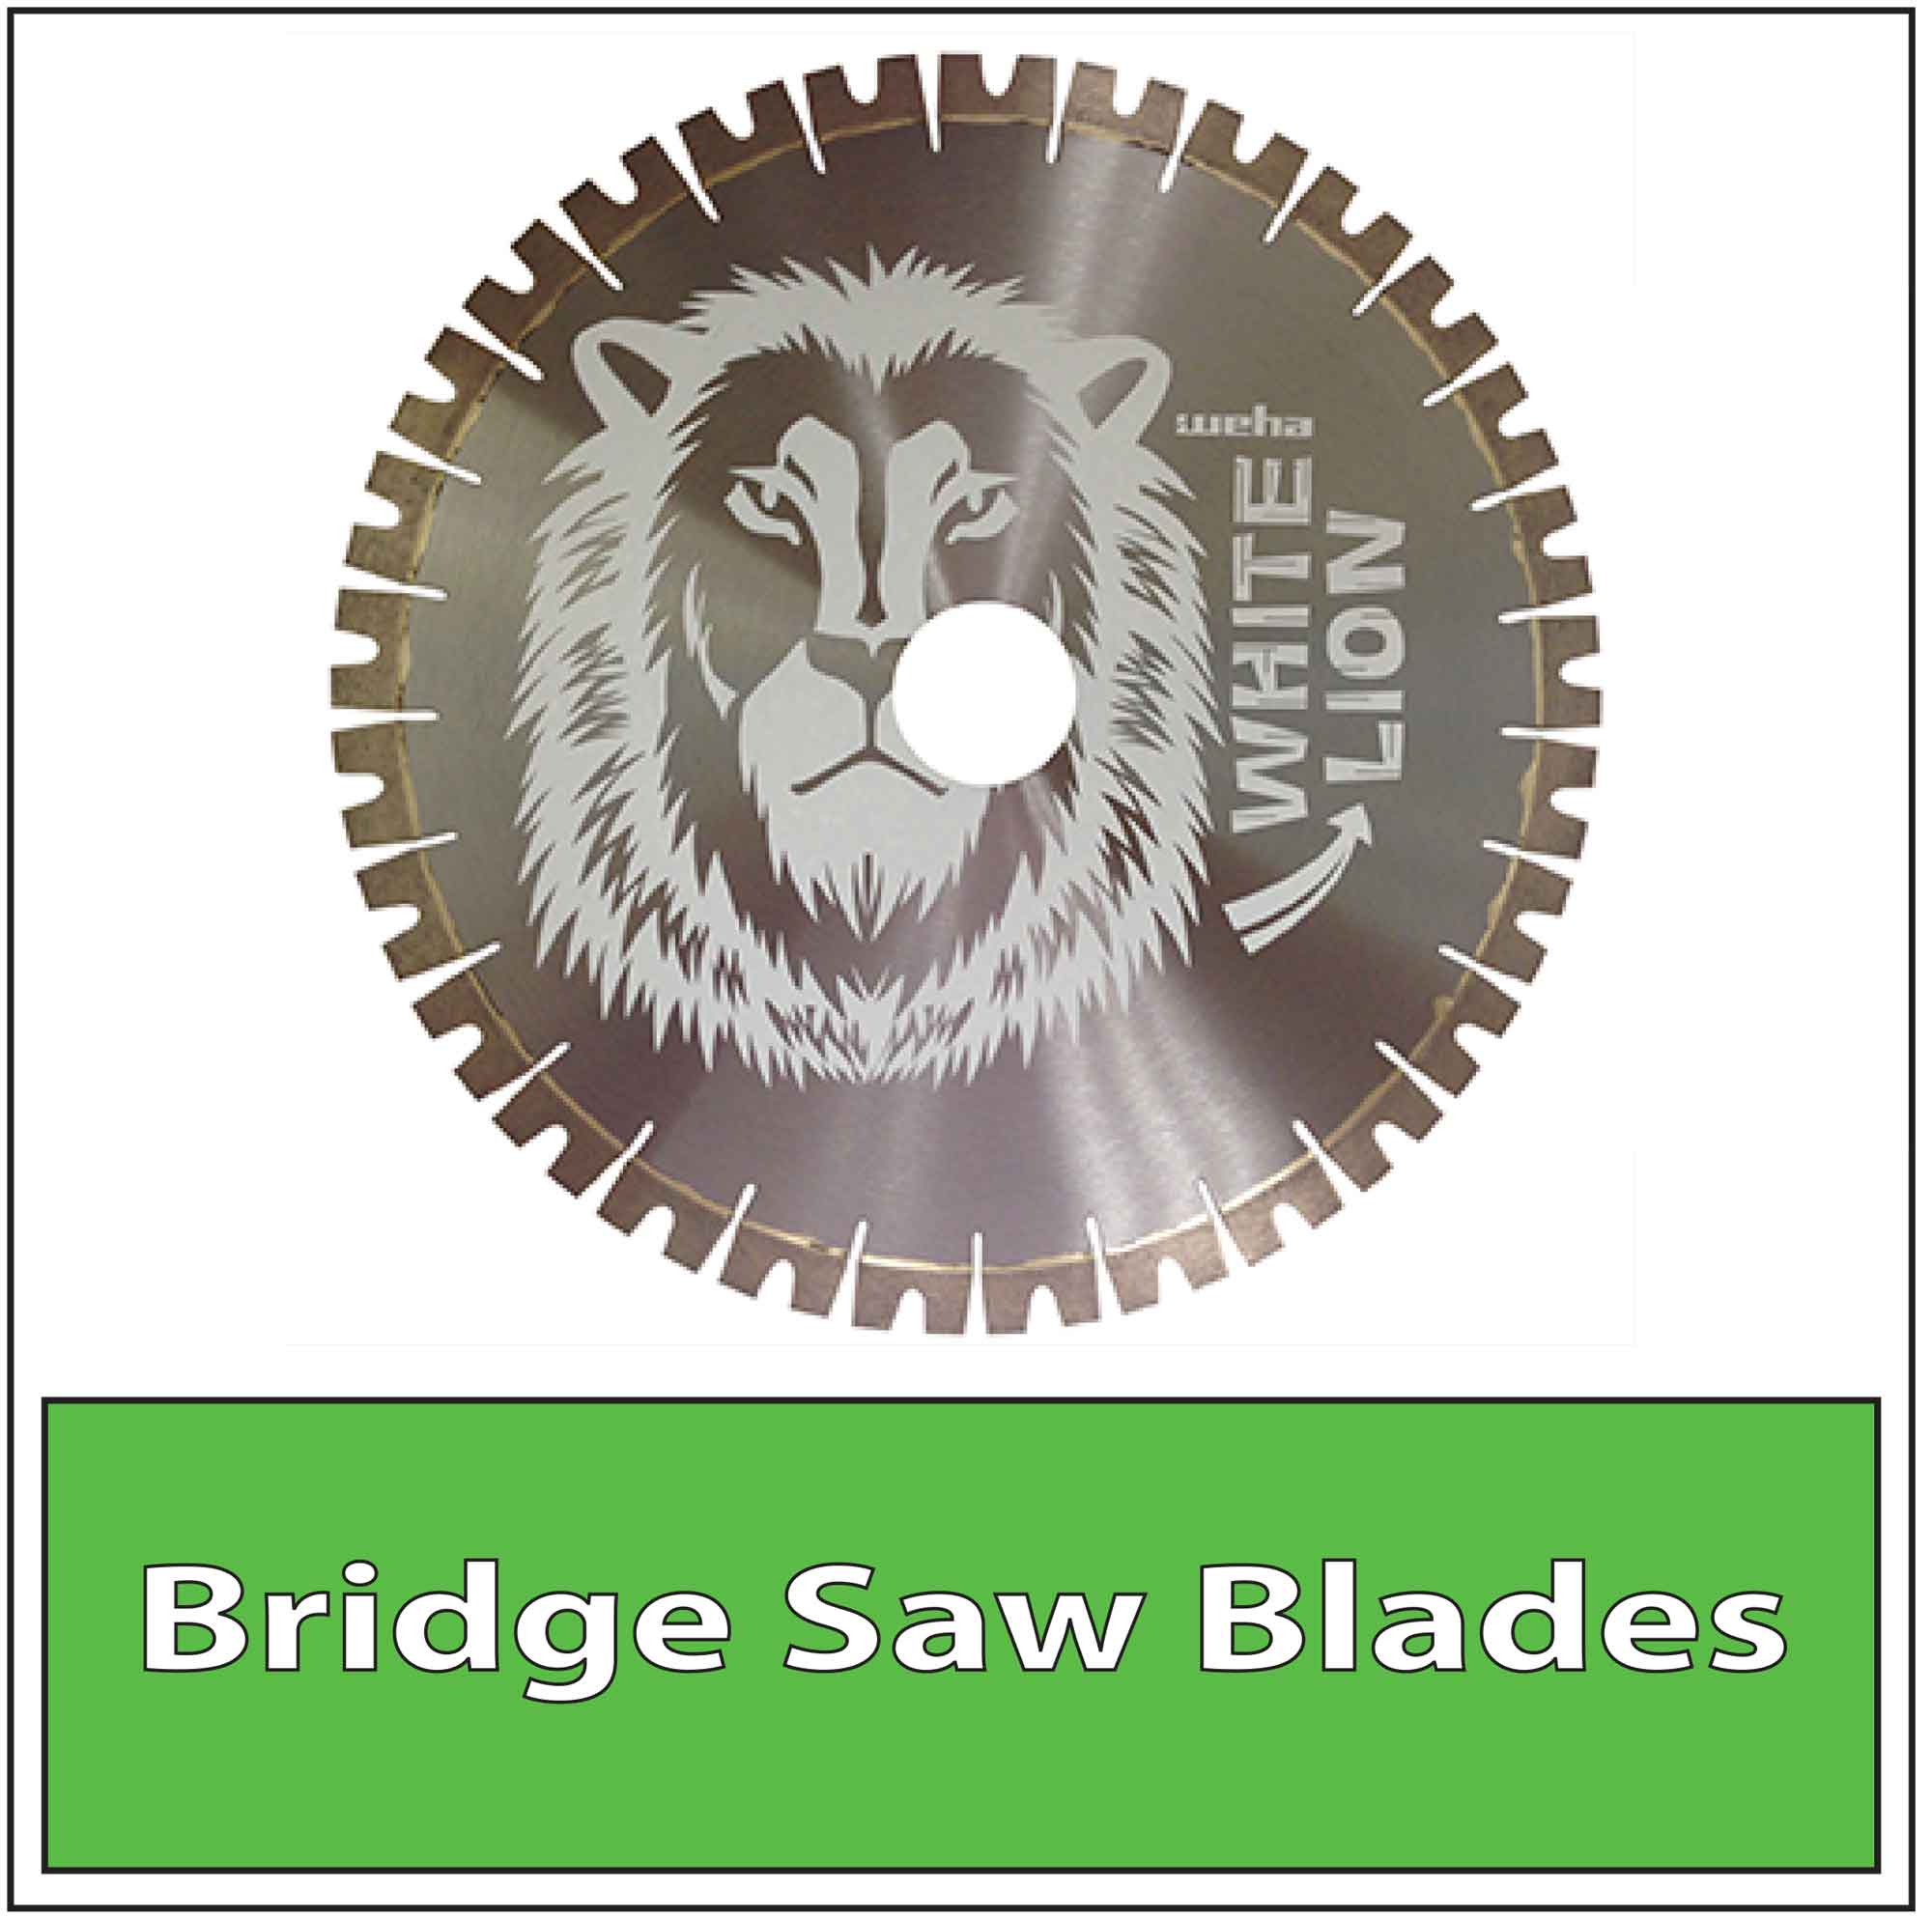 Granite Bridge Saw Blades for Granite Stone Fabrication